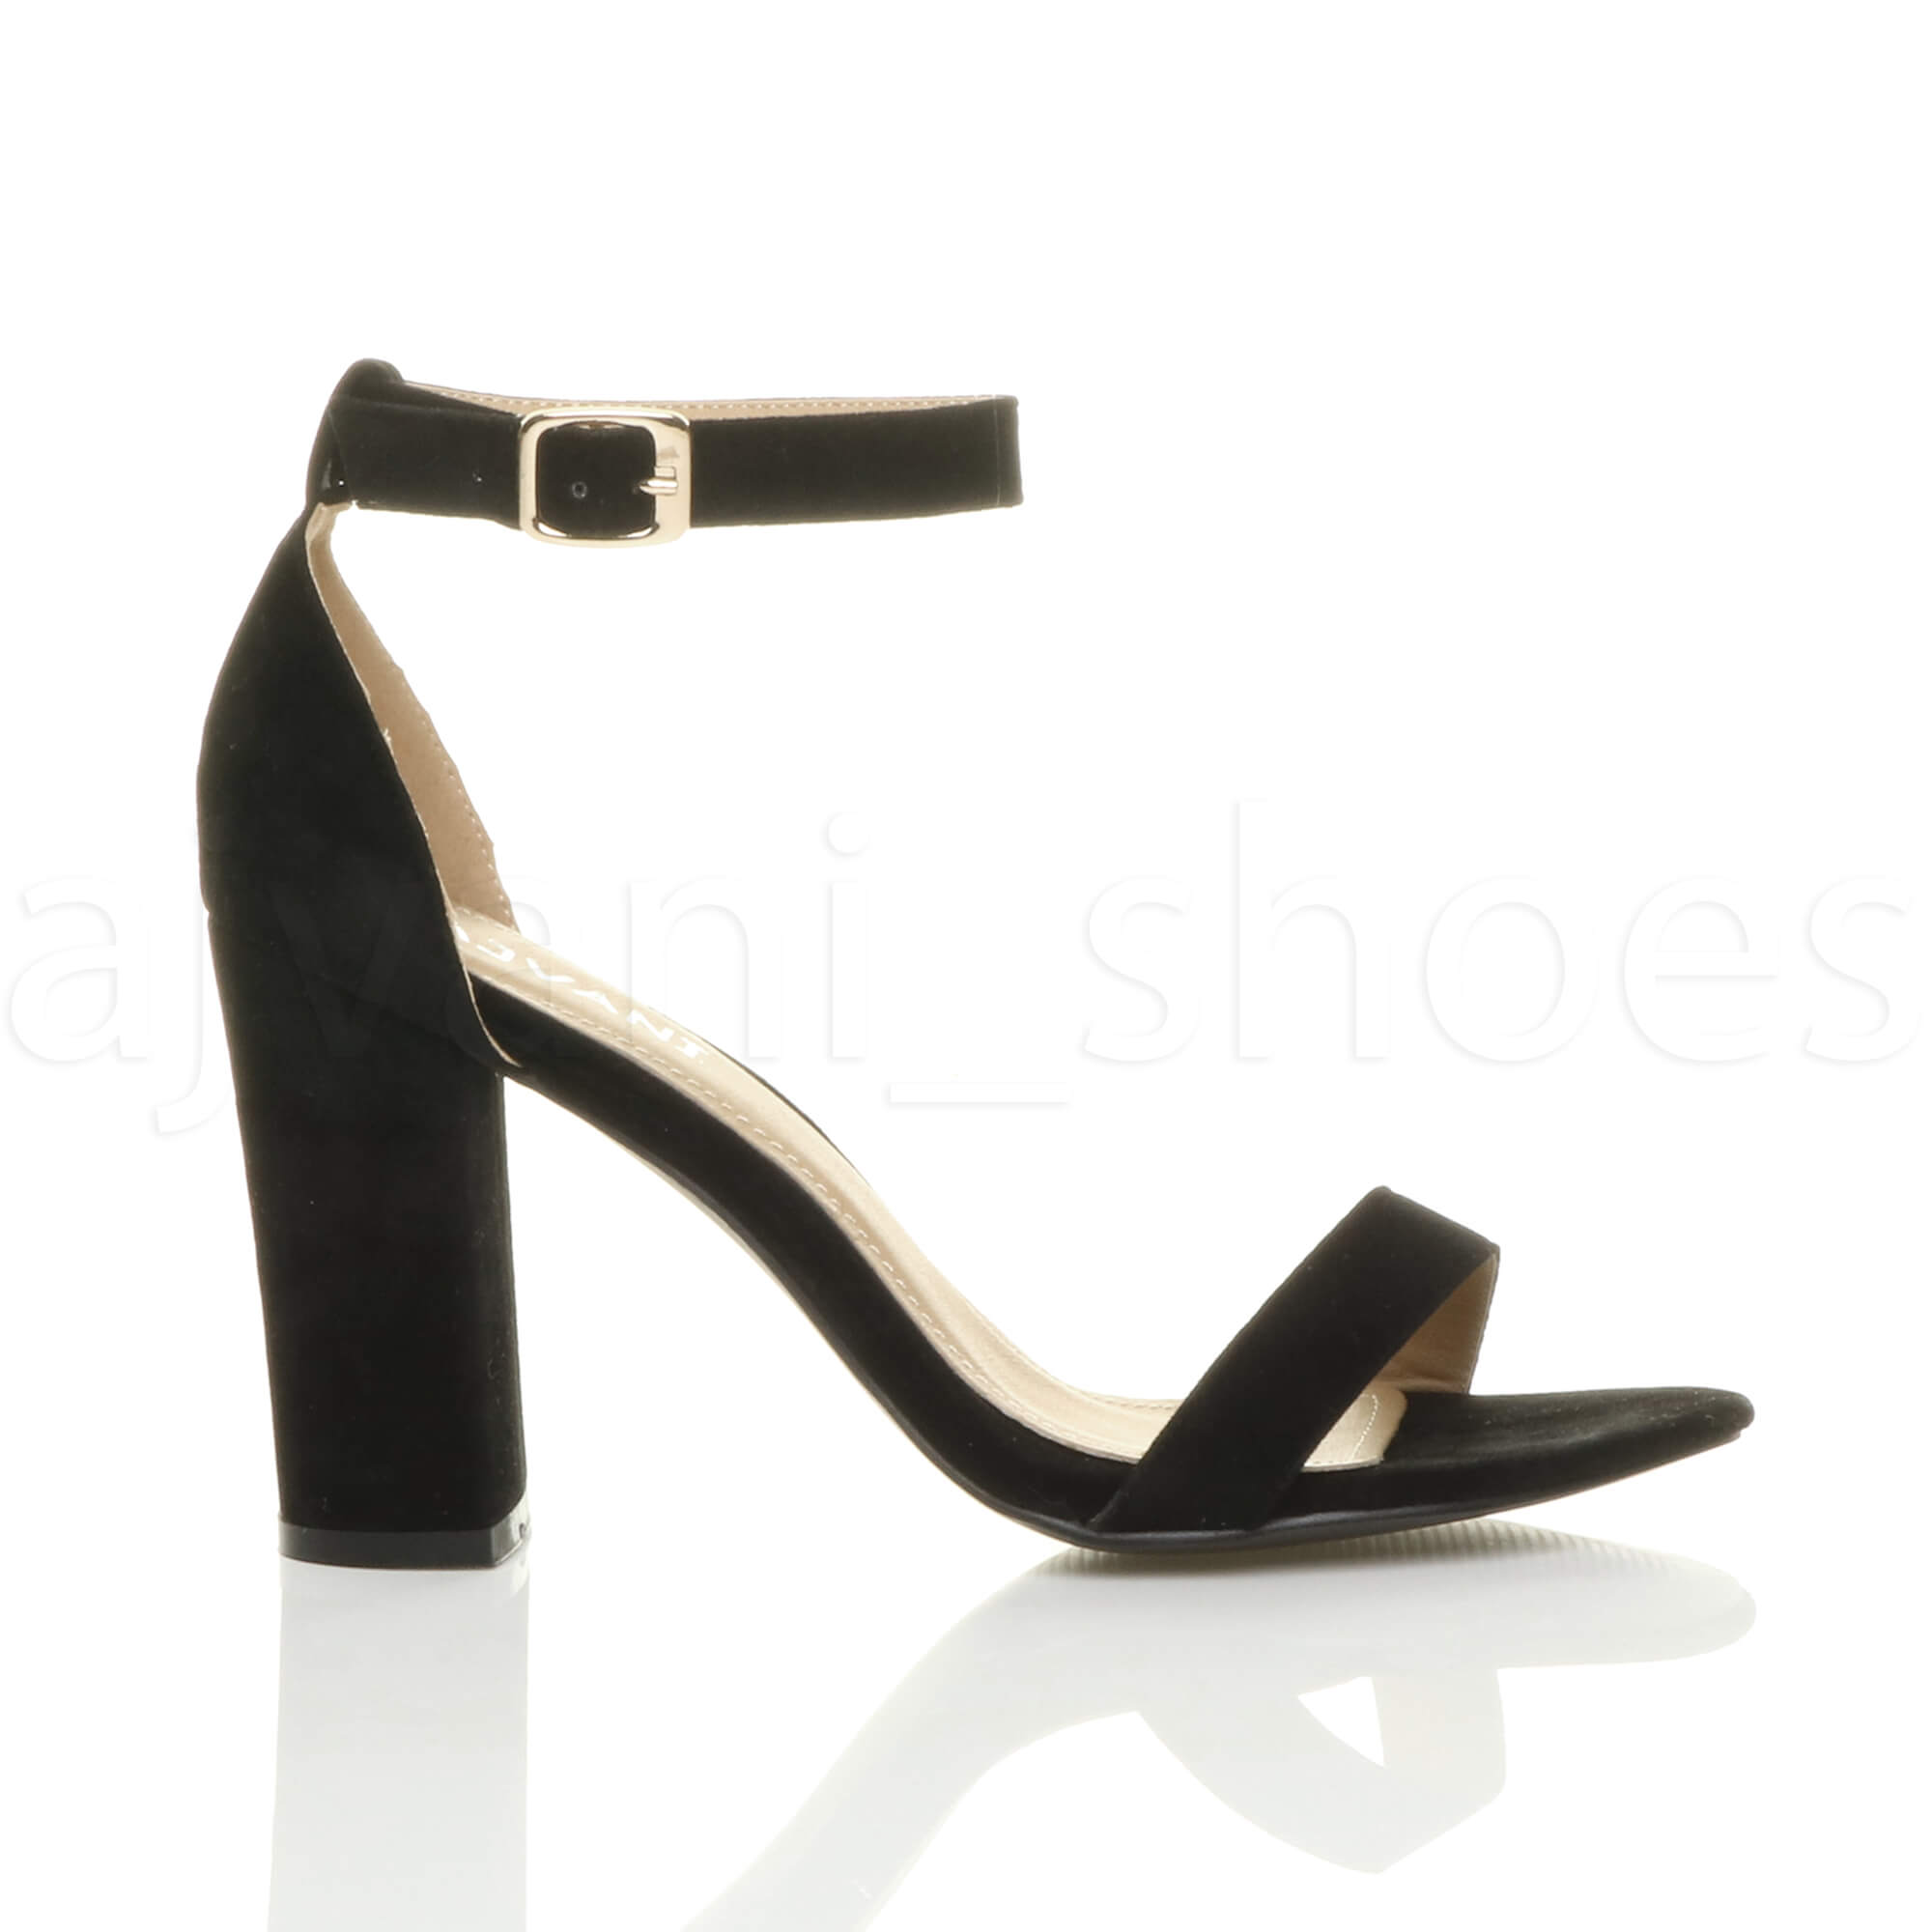 WOMENS-LADIES-BLOCK-HIGH-HEEL-ANKLE-STRAP-PEEP-TOE-STRAPPY-SANDALS-SHOES-SIZE thumbnail 38